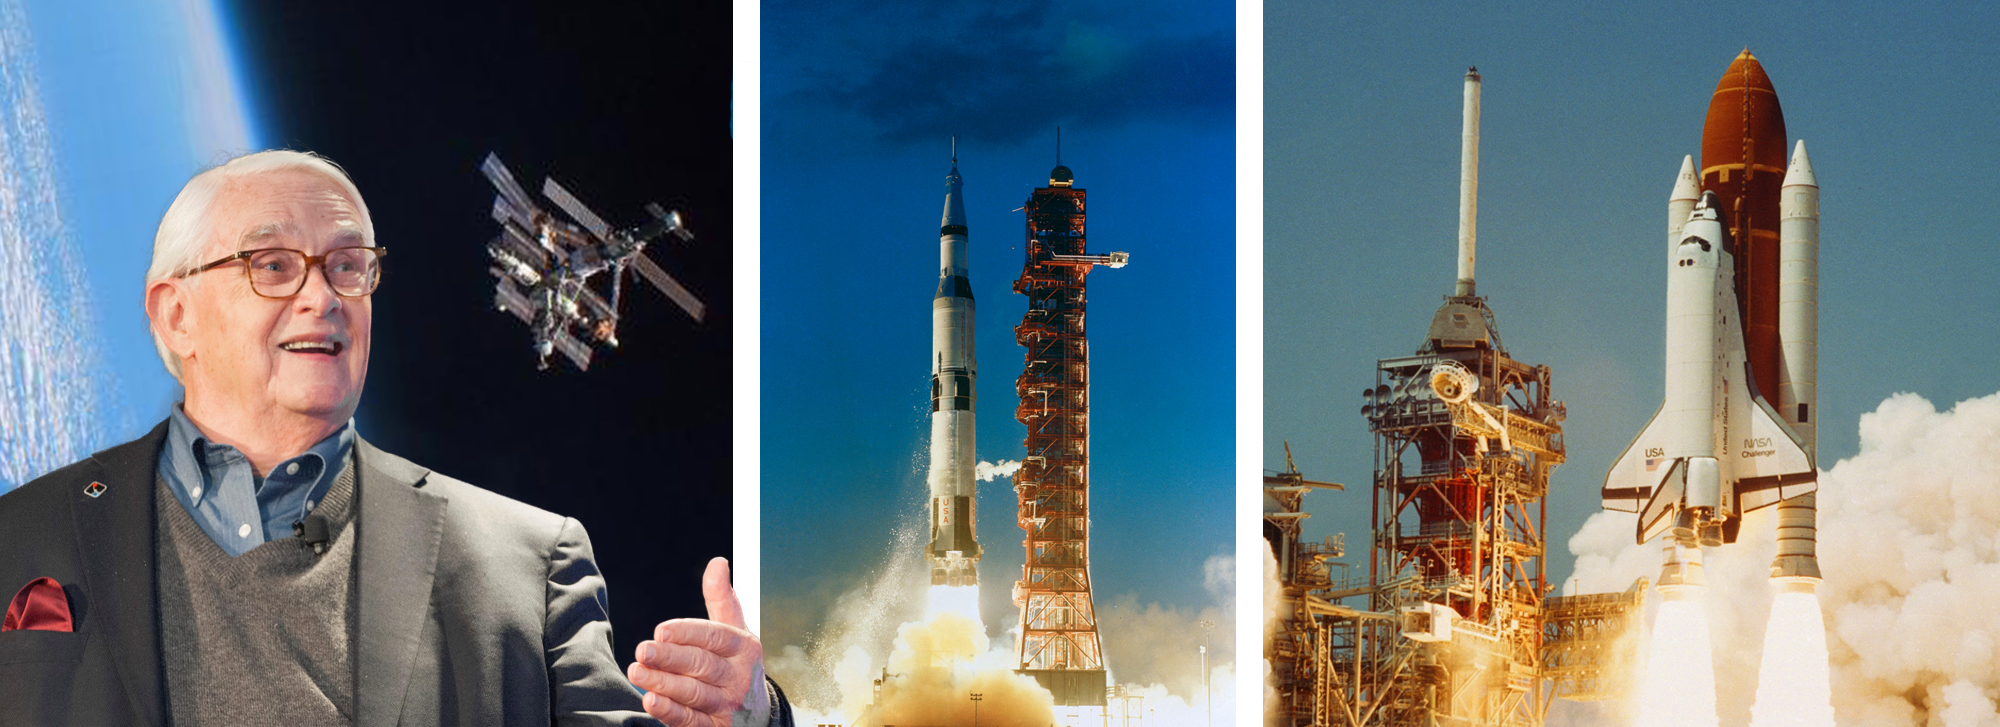 Presidential Leadership in Human Space Exploration